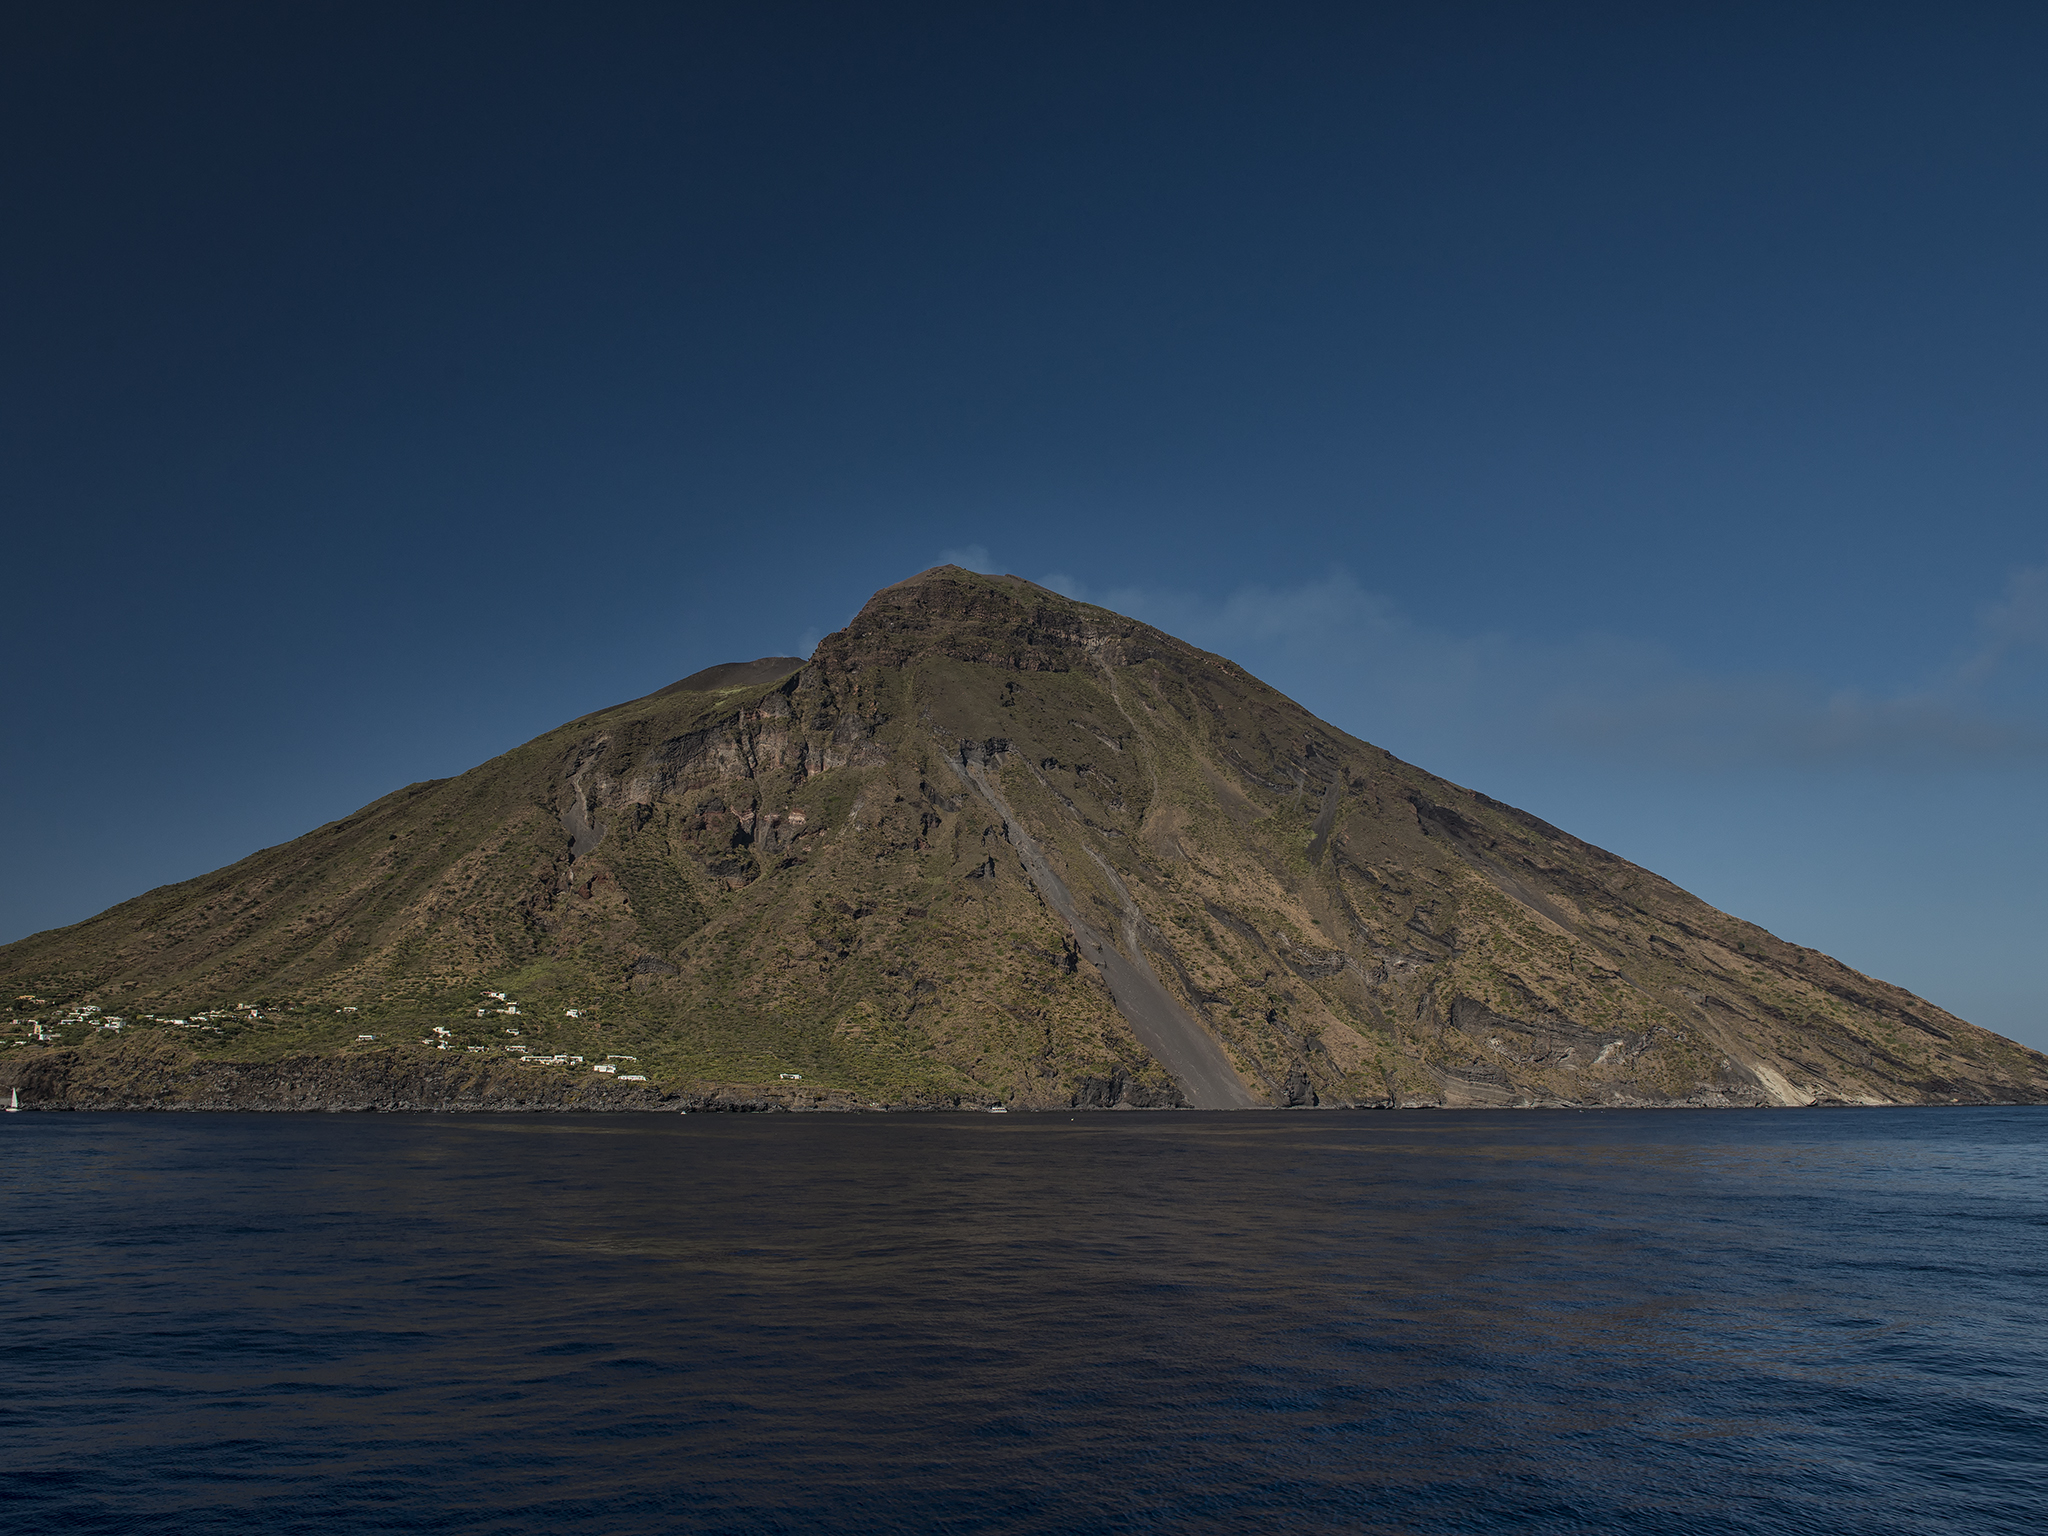 Stromboli North of Sicily, Italy